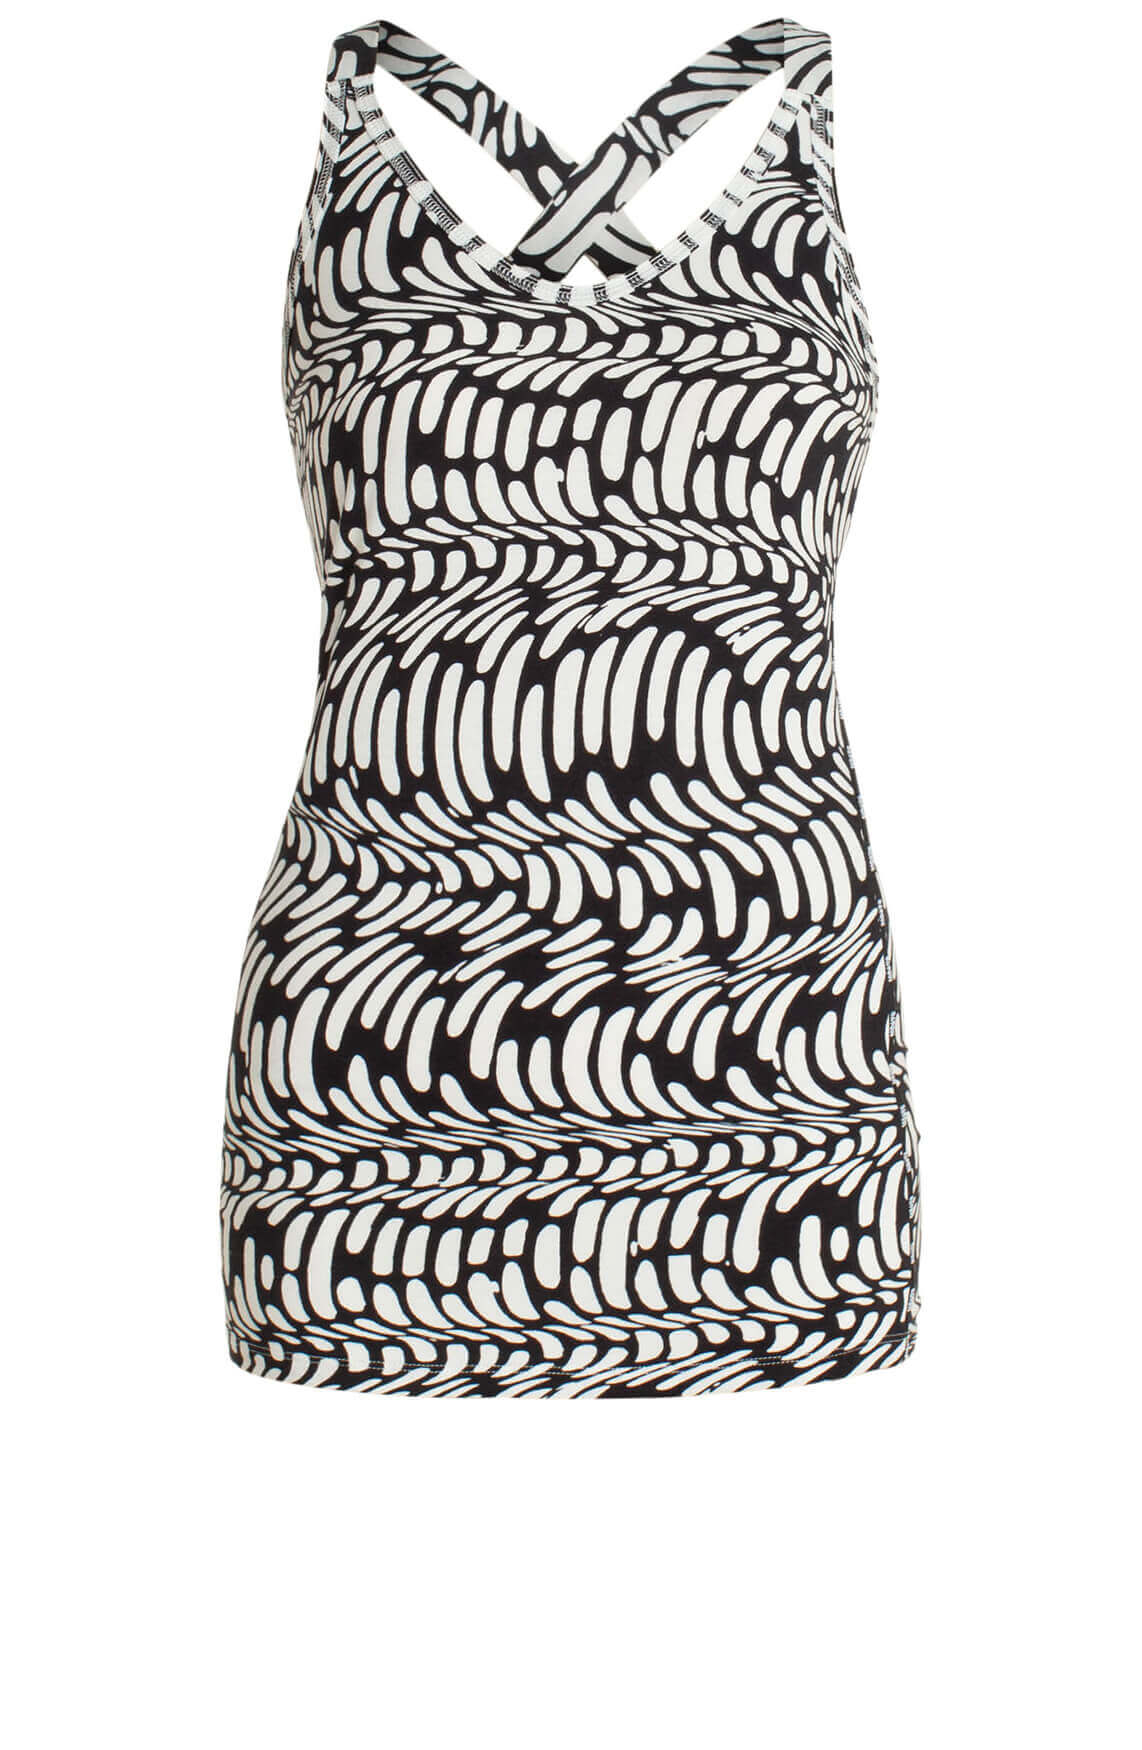 10 Days Dames Top met wave print zwart